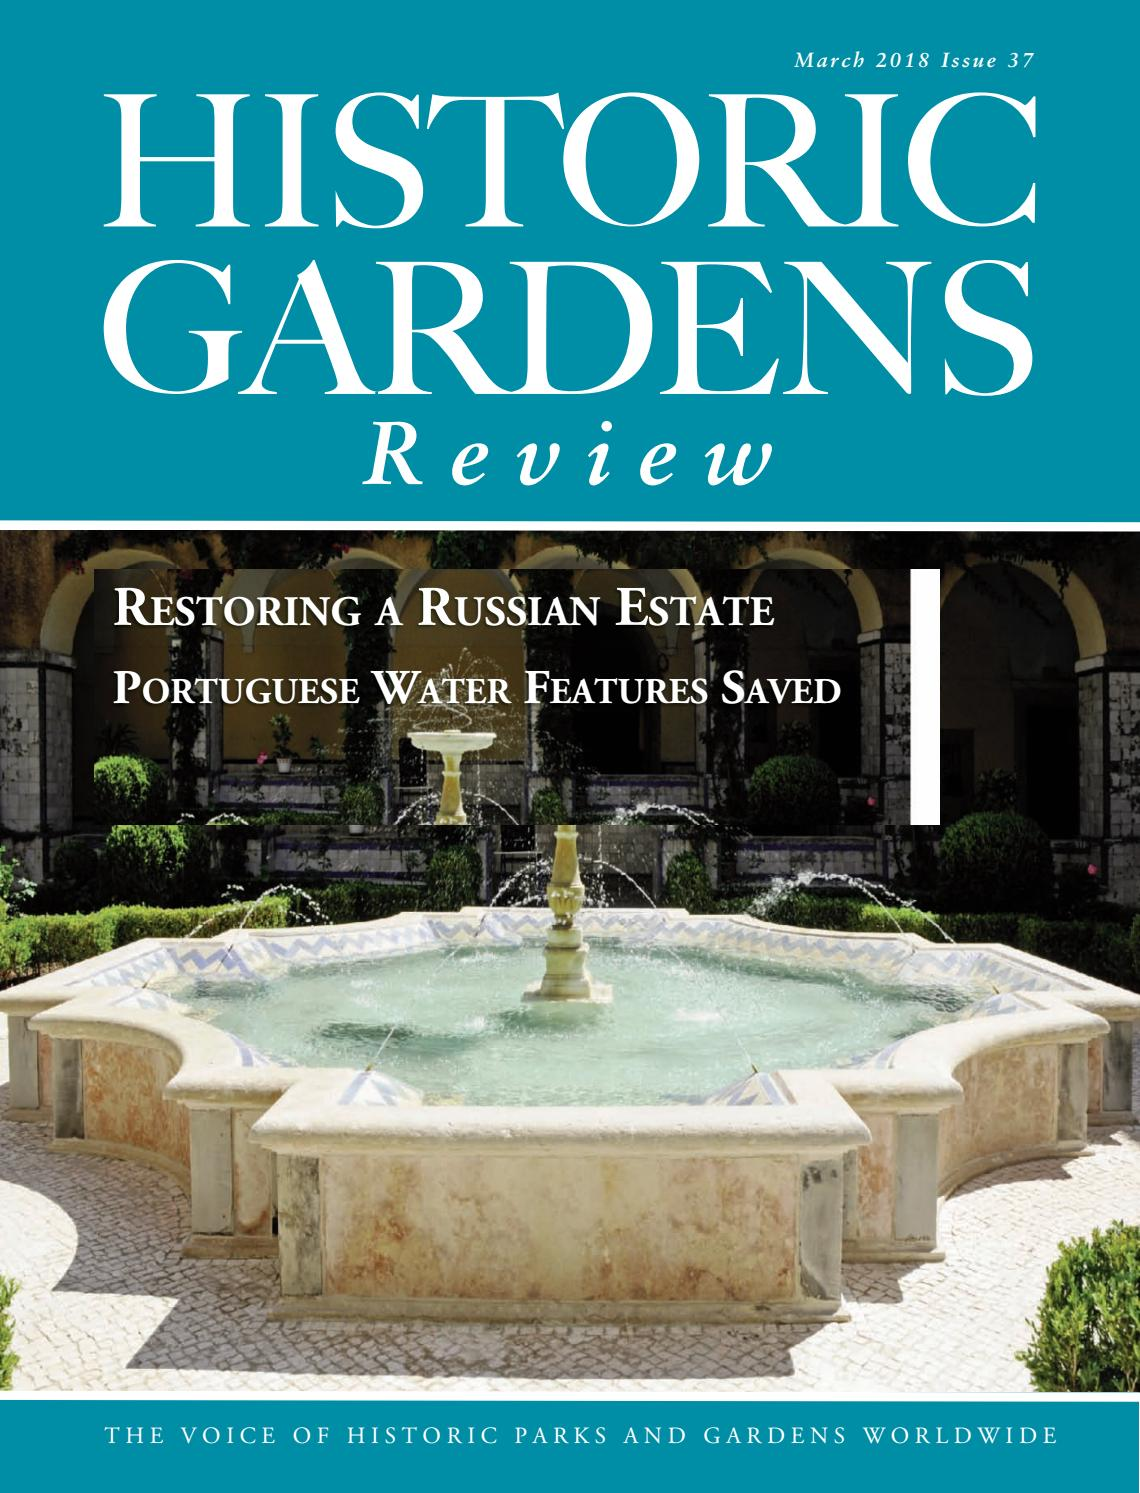 Historic Gardens Review By Historic Gardens Foundation Issuu